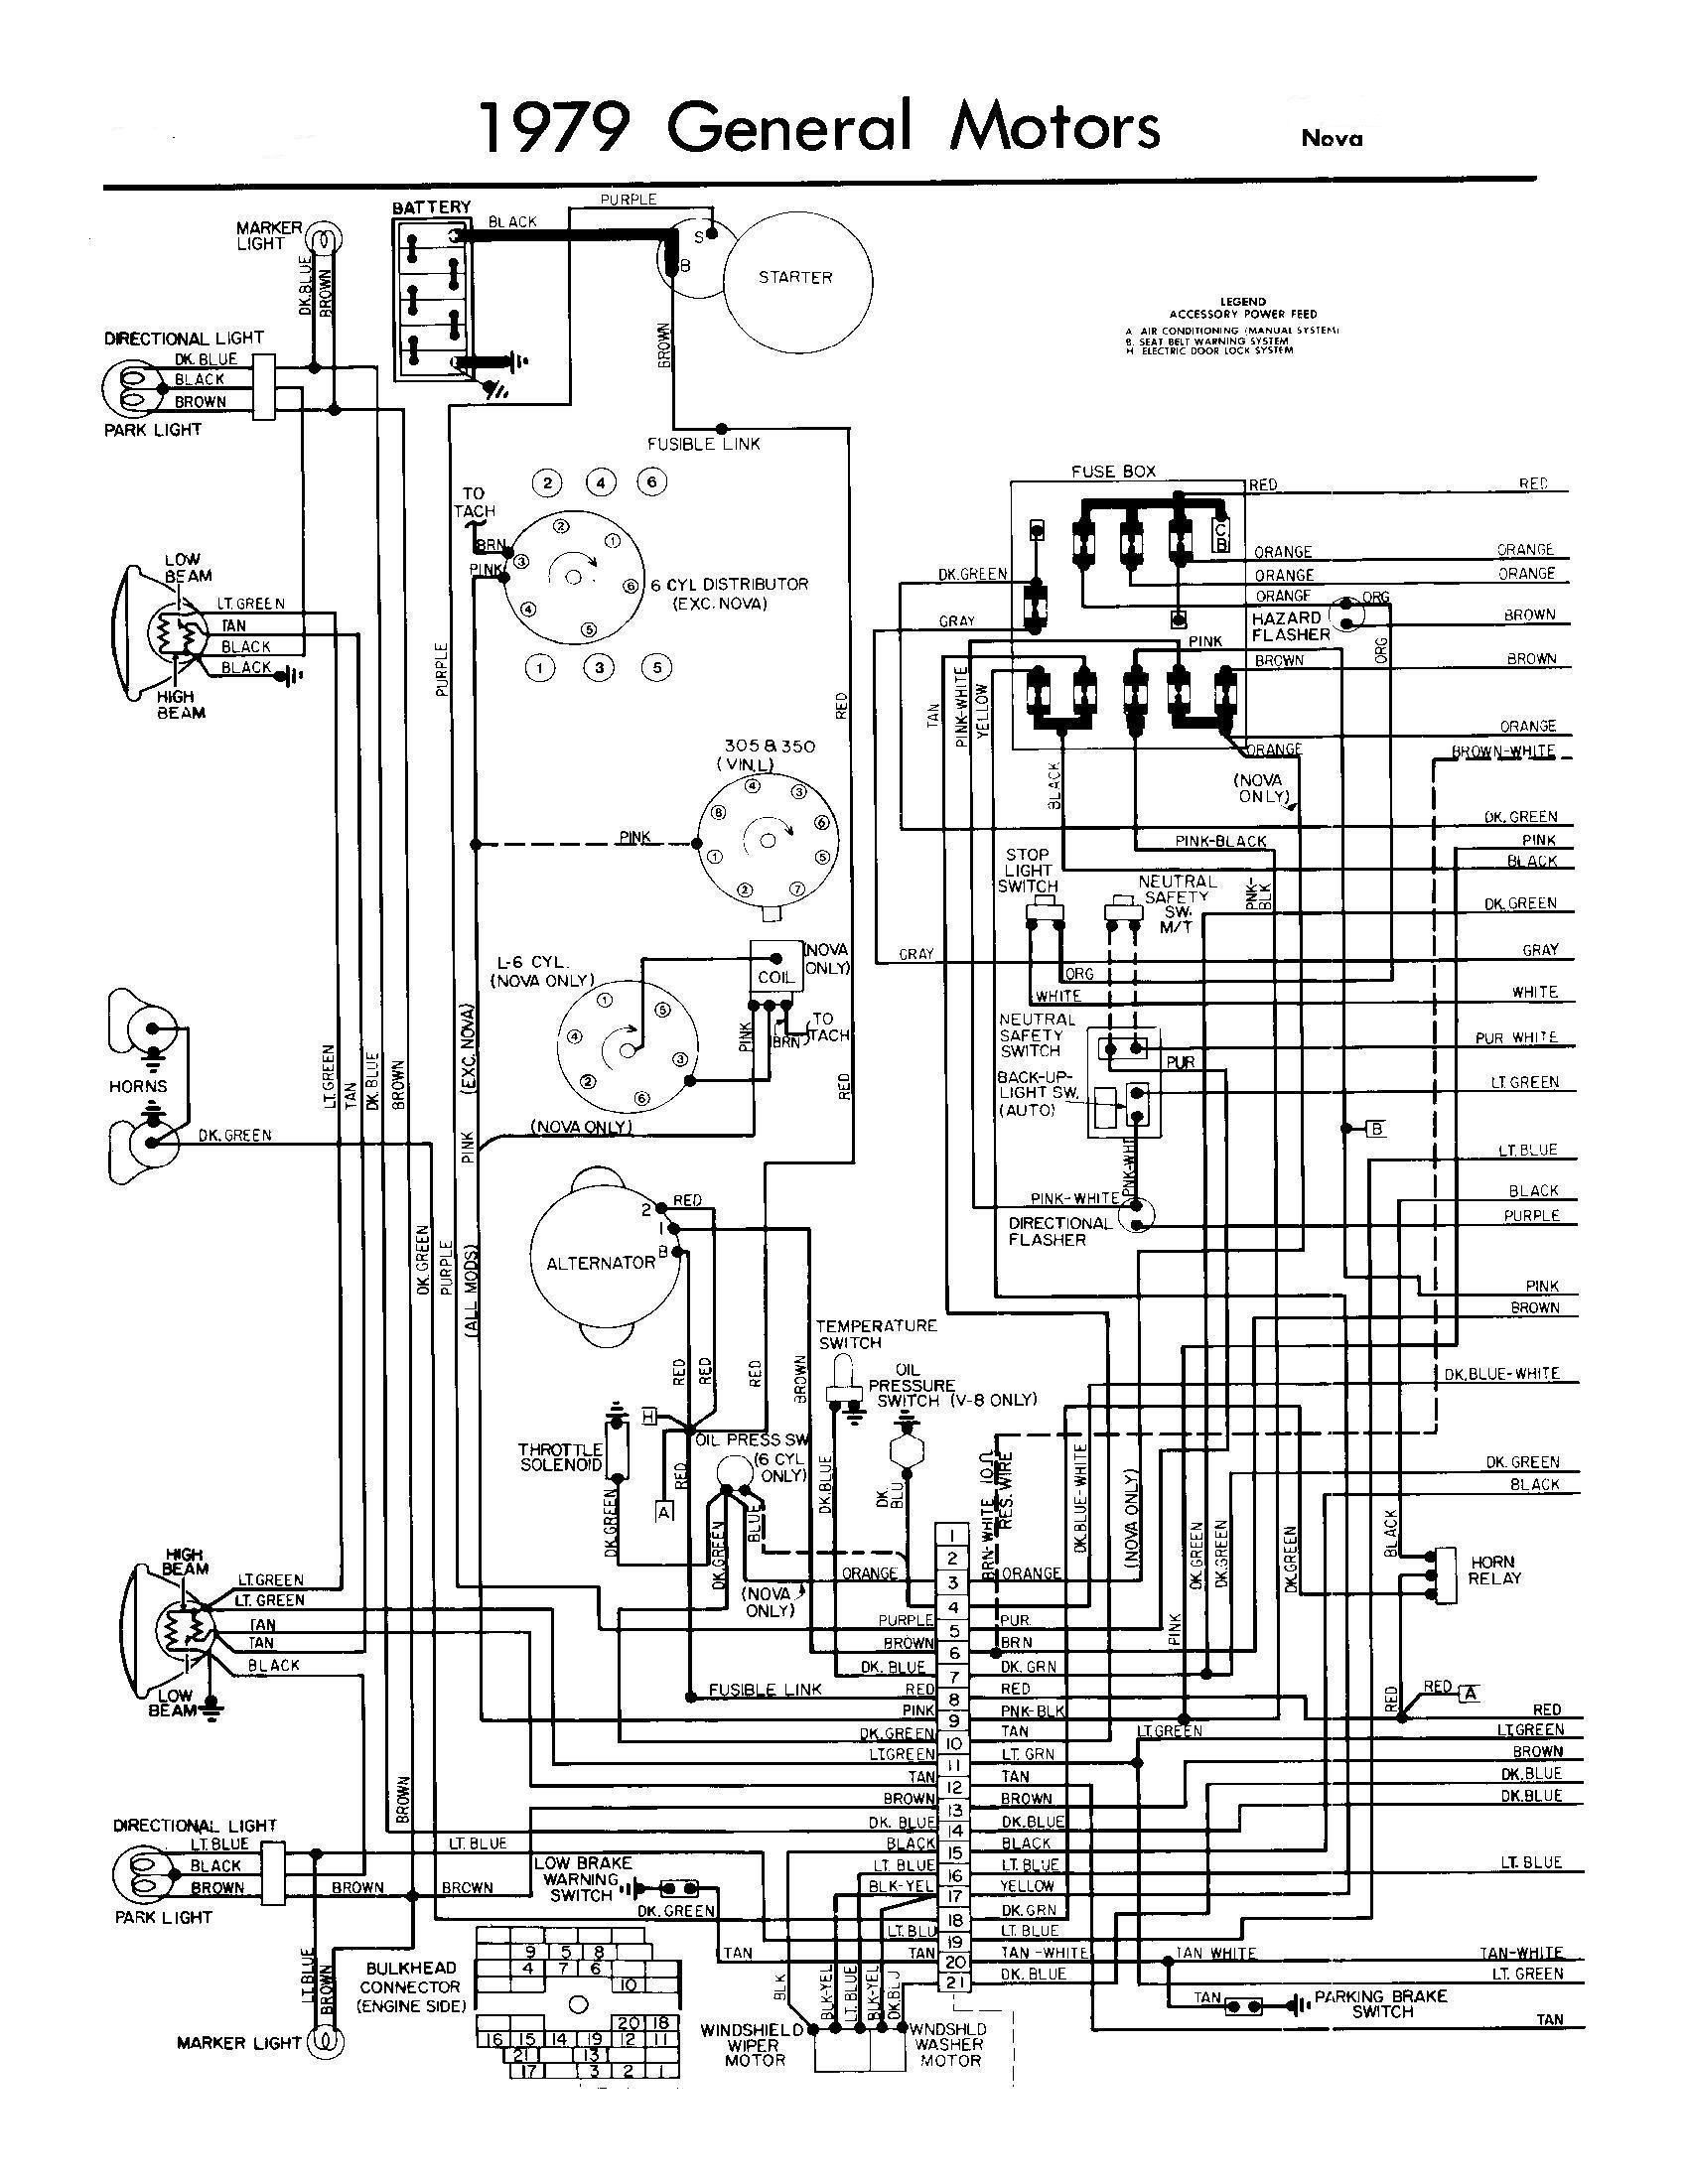 1999 chevy truck fuse box diagram